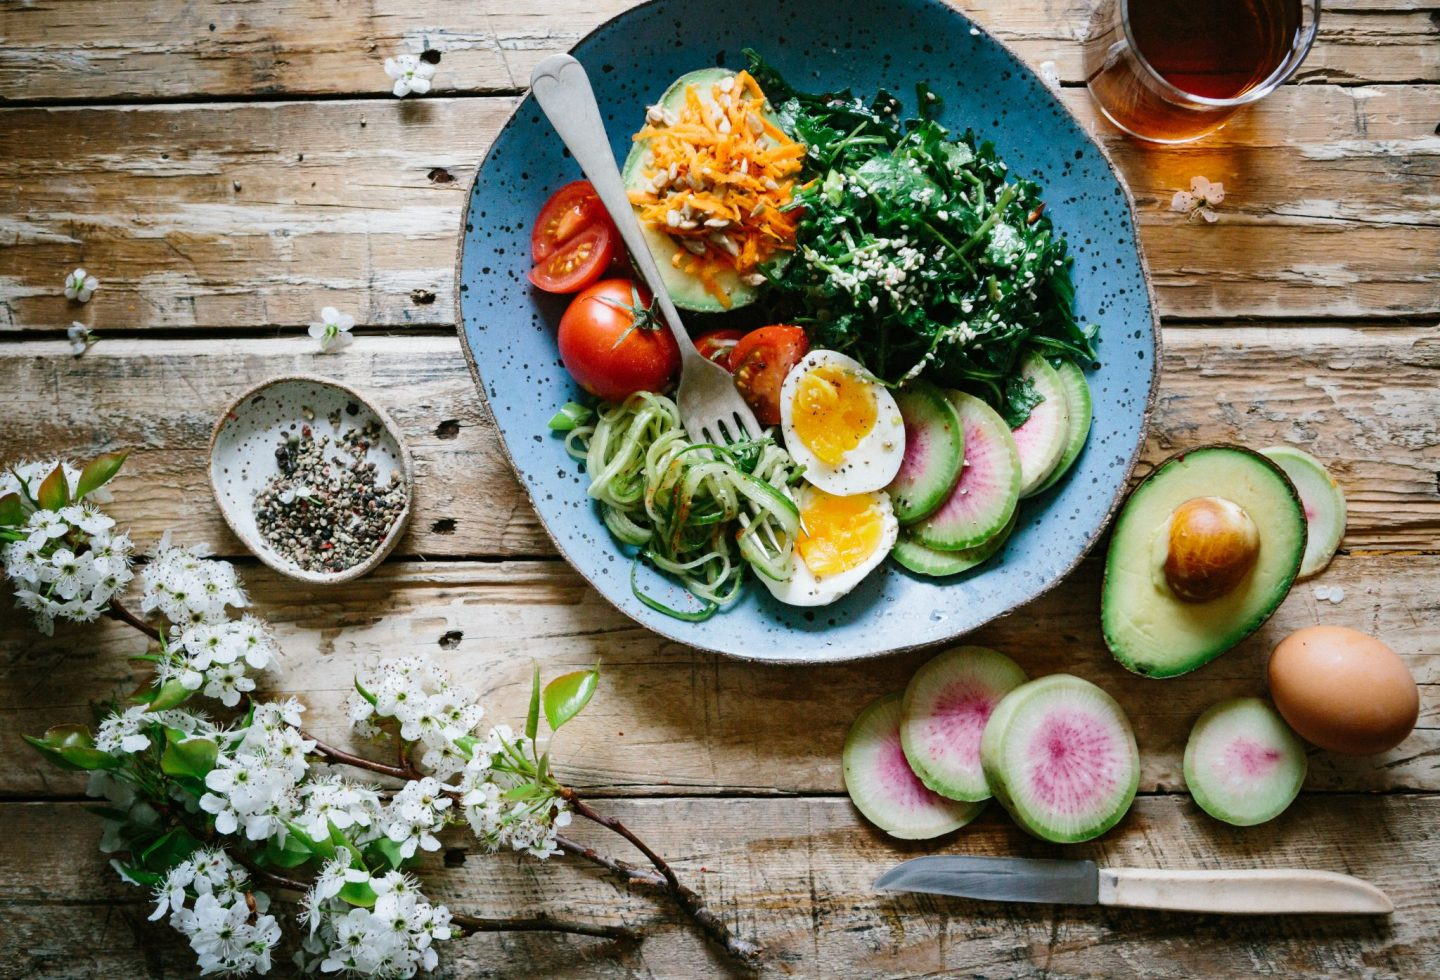 5 WAYS TO CONSUME HEALTHY WHILST WORKING REMOTELY